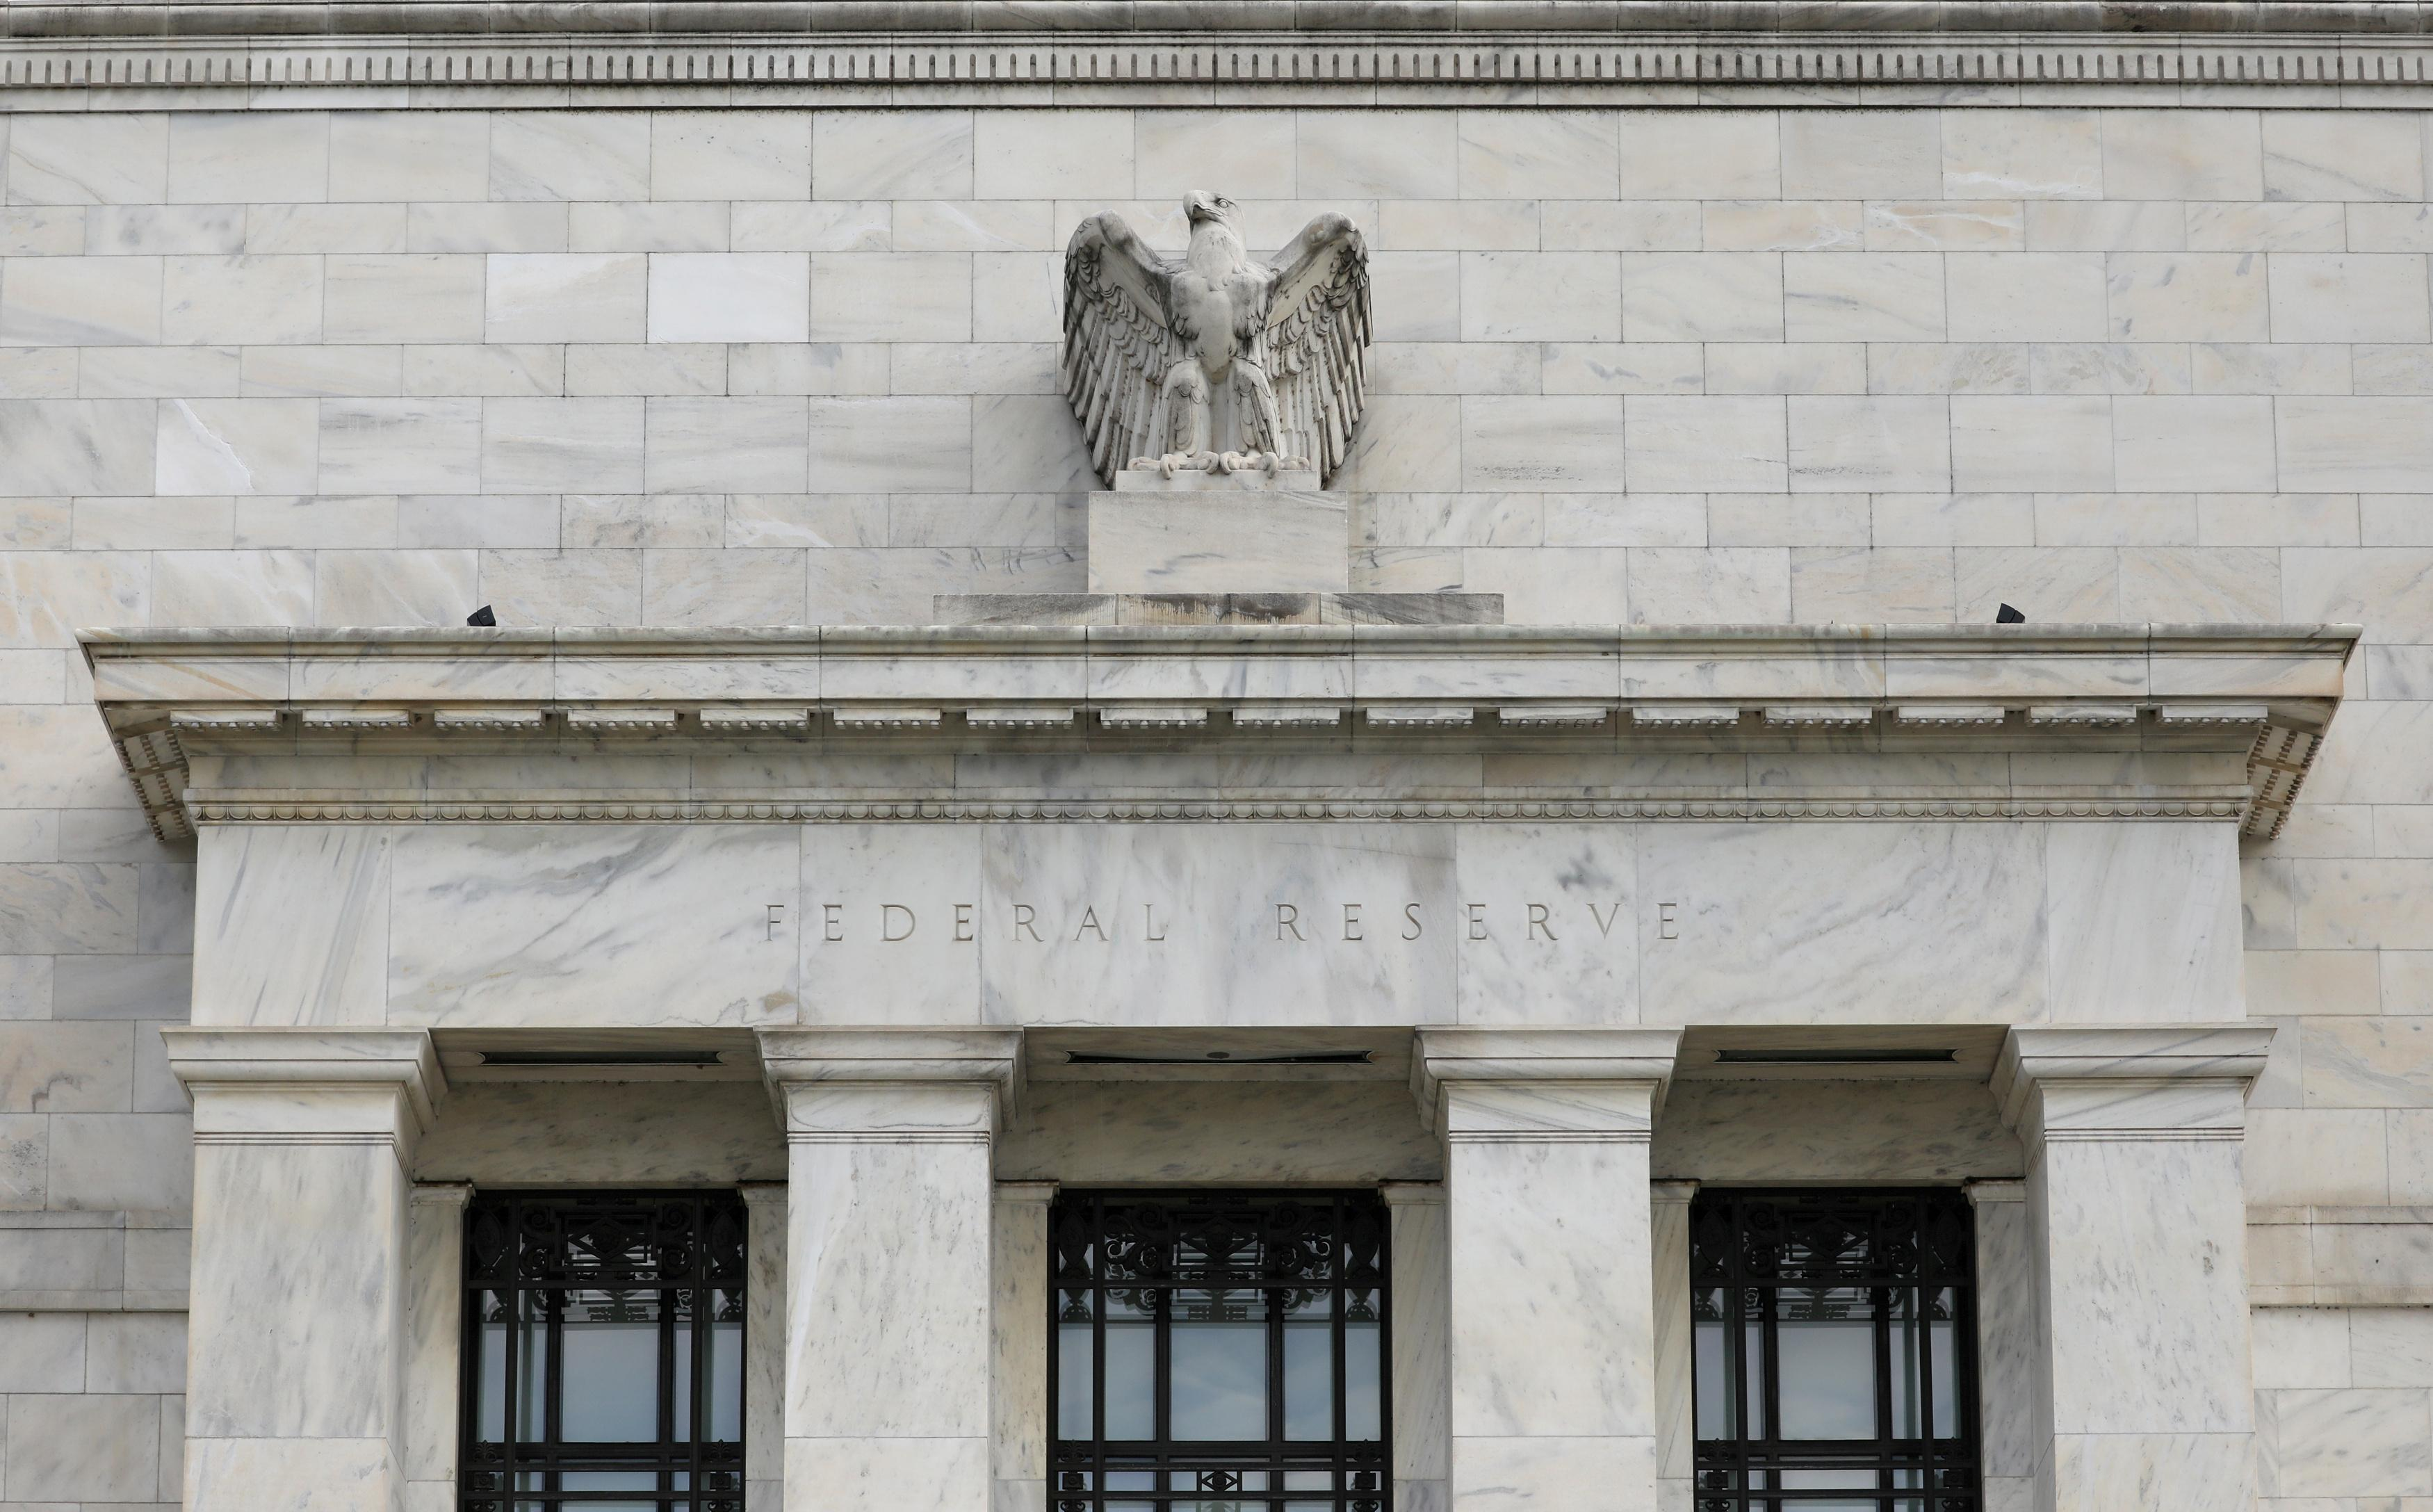 Fed may want to respond to uncertainty with stimulus: Daly